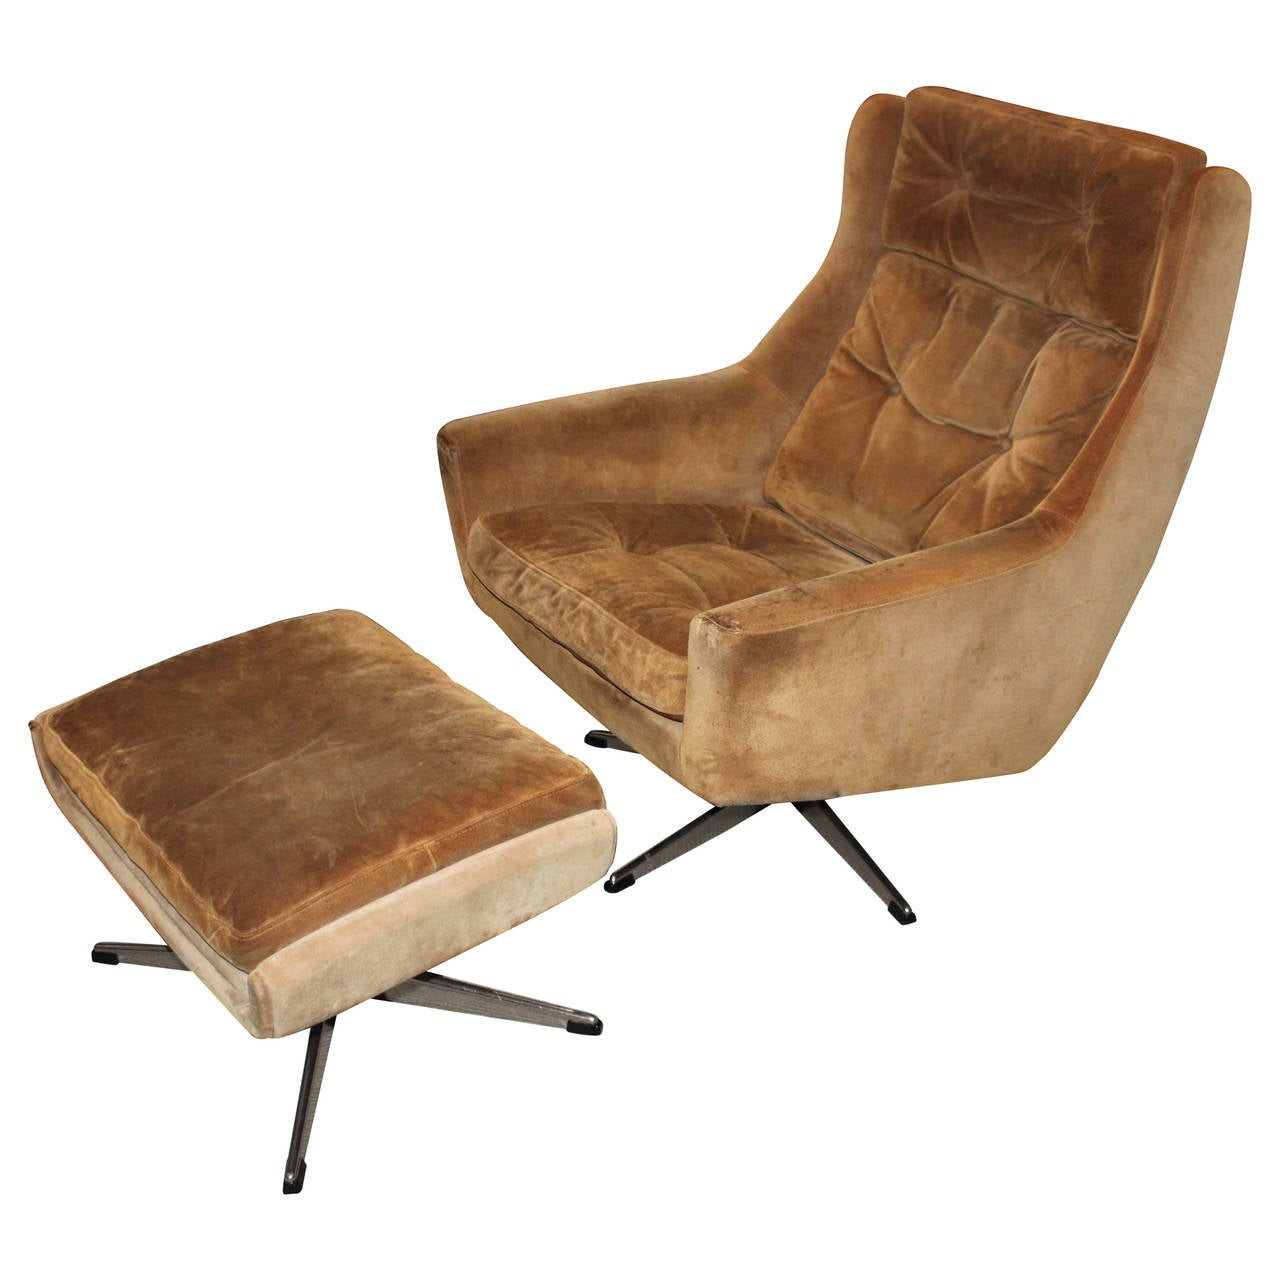 Mid century modern overman lounge chair with ottoman at for Modern lounge furniture